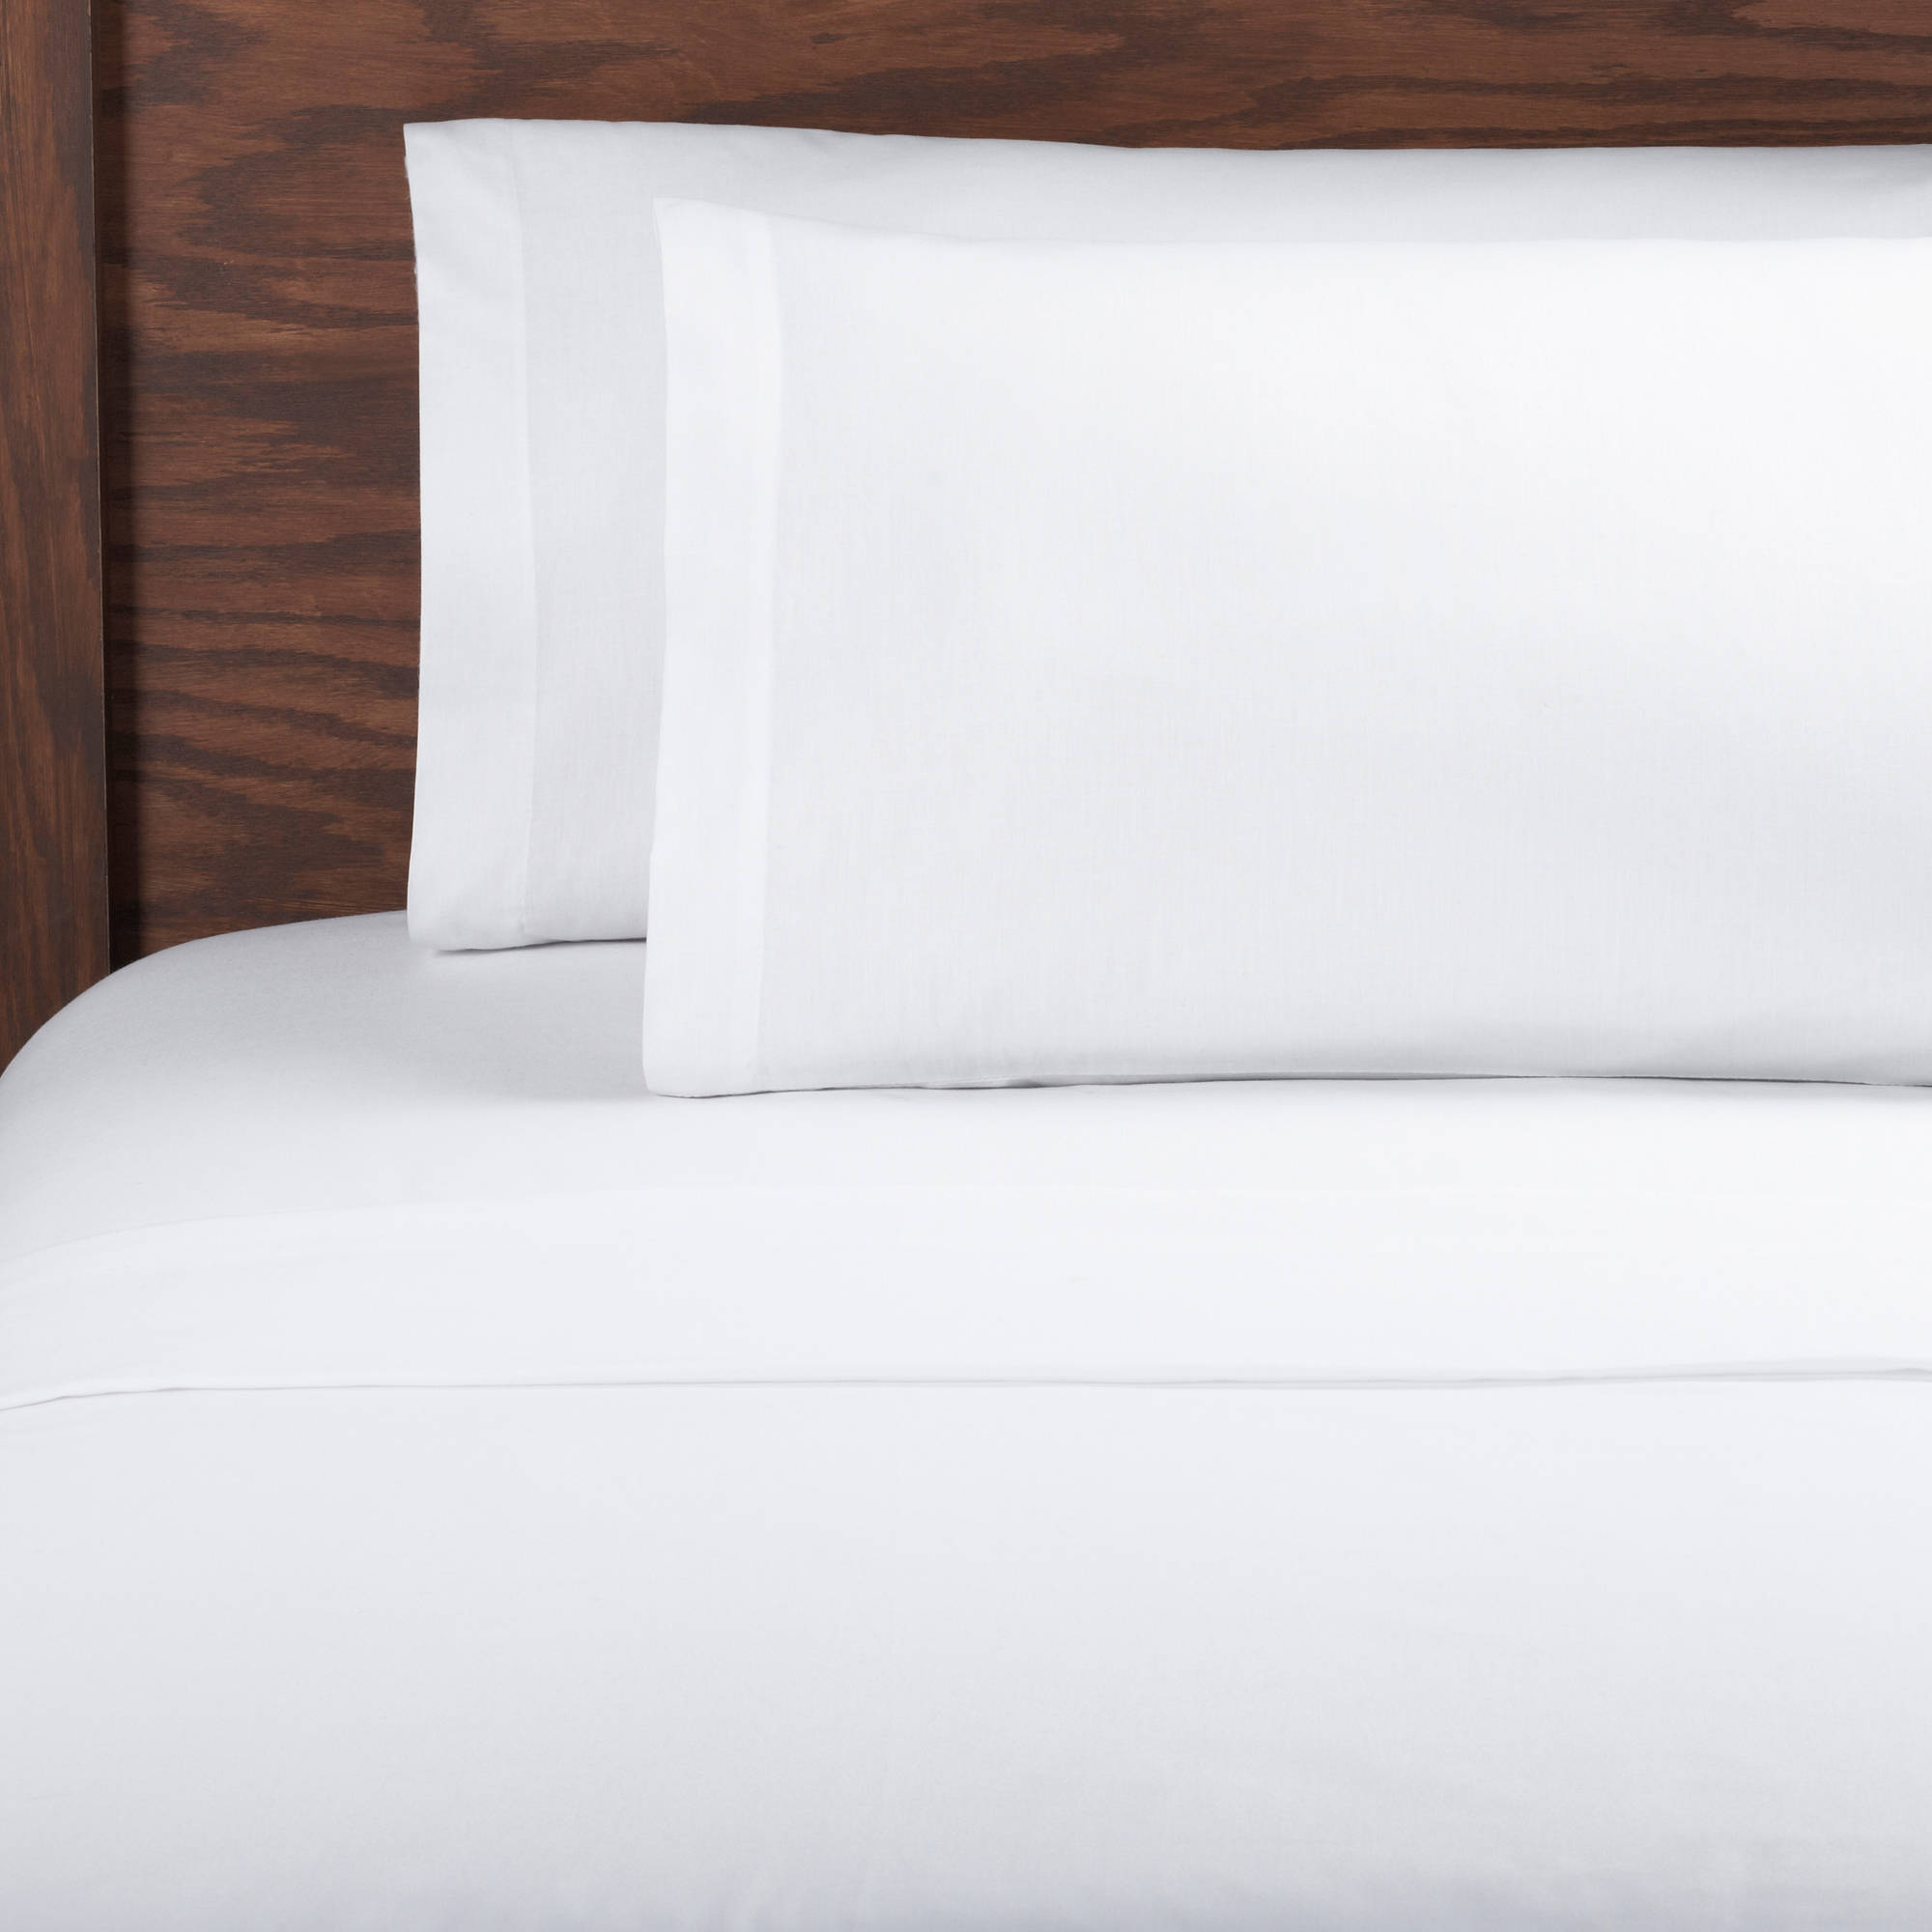 High thread count bed sheets - Better Homes And Gardens 350 Thread Count Hygro Cotton Percale Sheet Set Walmart Com